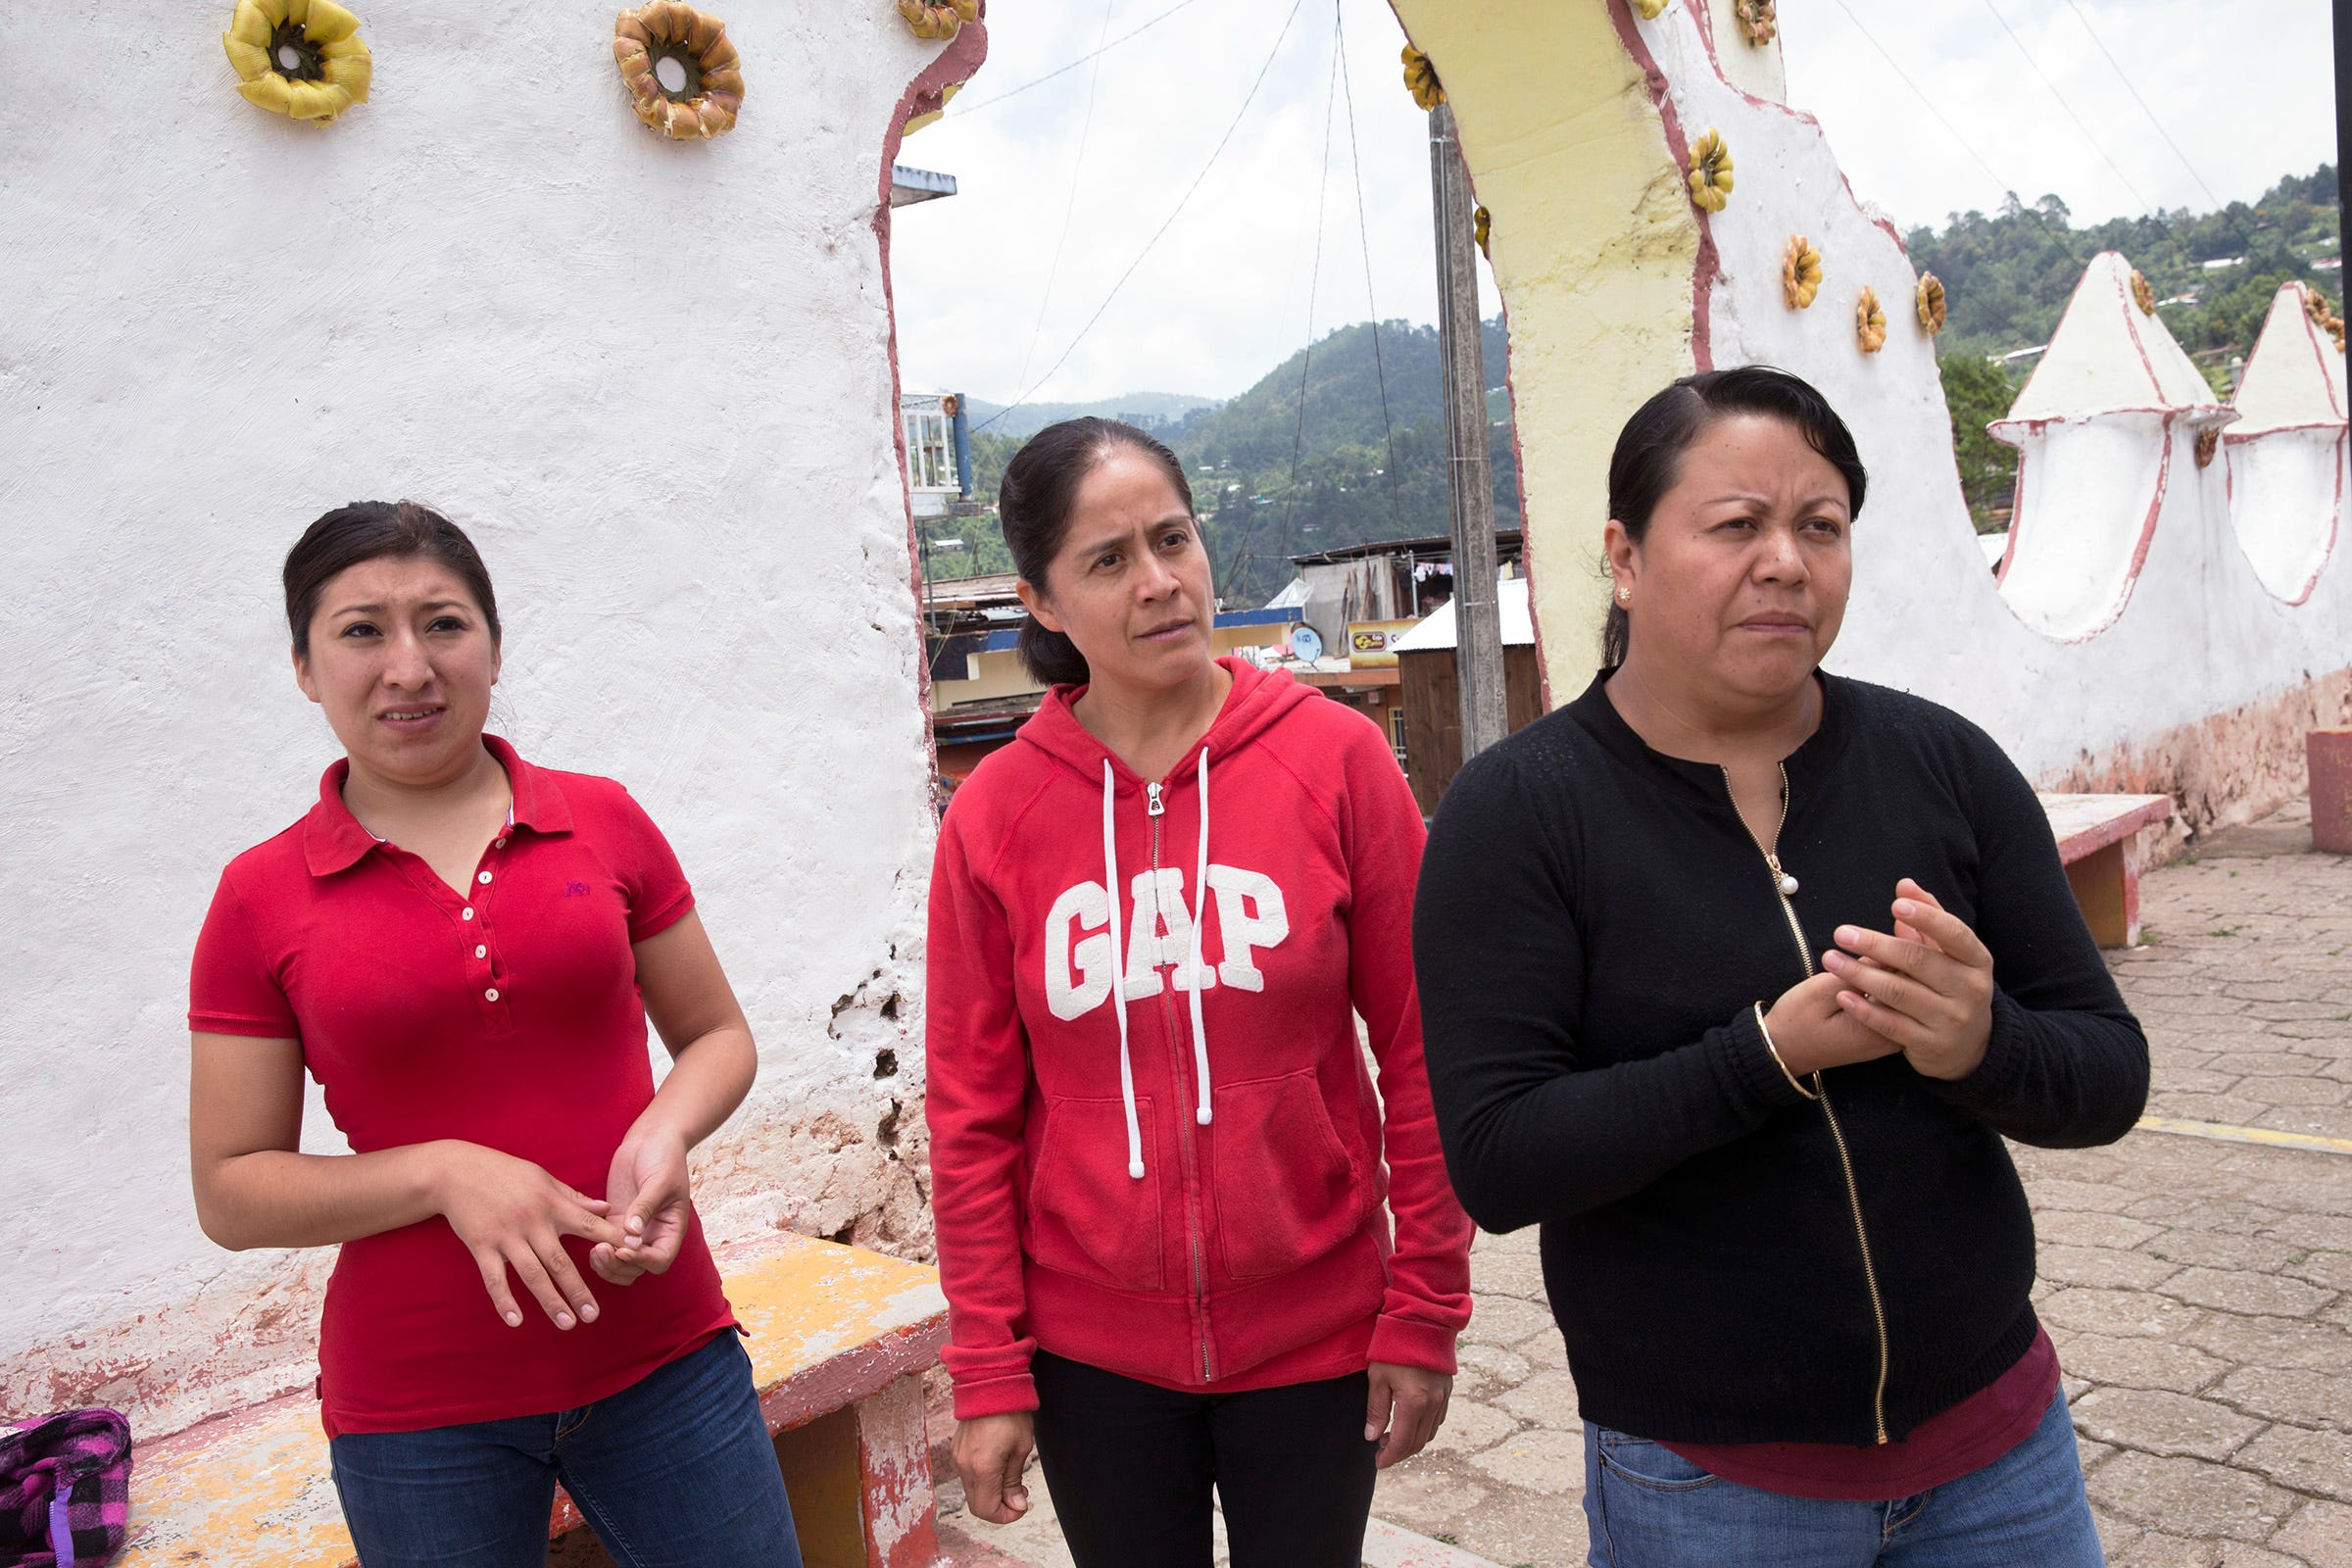 Blanca Hernández, center, walks with friends Lucero Quechulpa, left, and Fátima Anastasio in Texhuacán. The three worked at dairy farms in Wisconsin or Minnesota before returning to México.